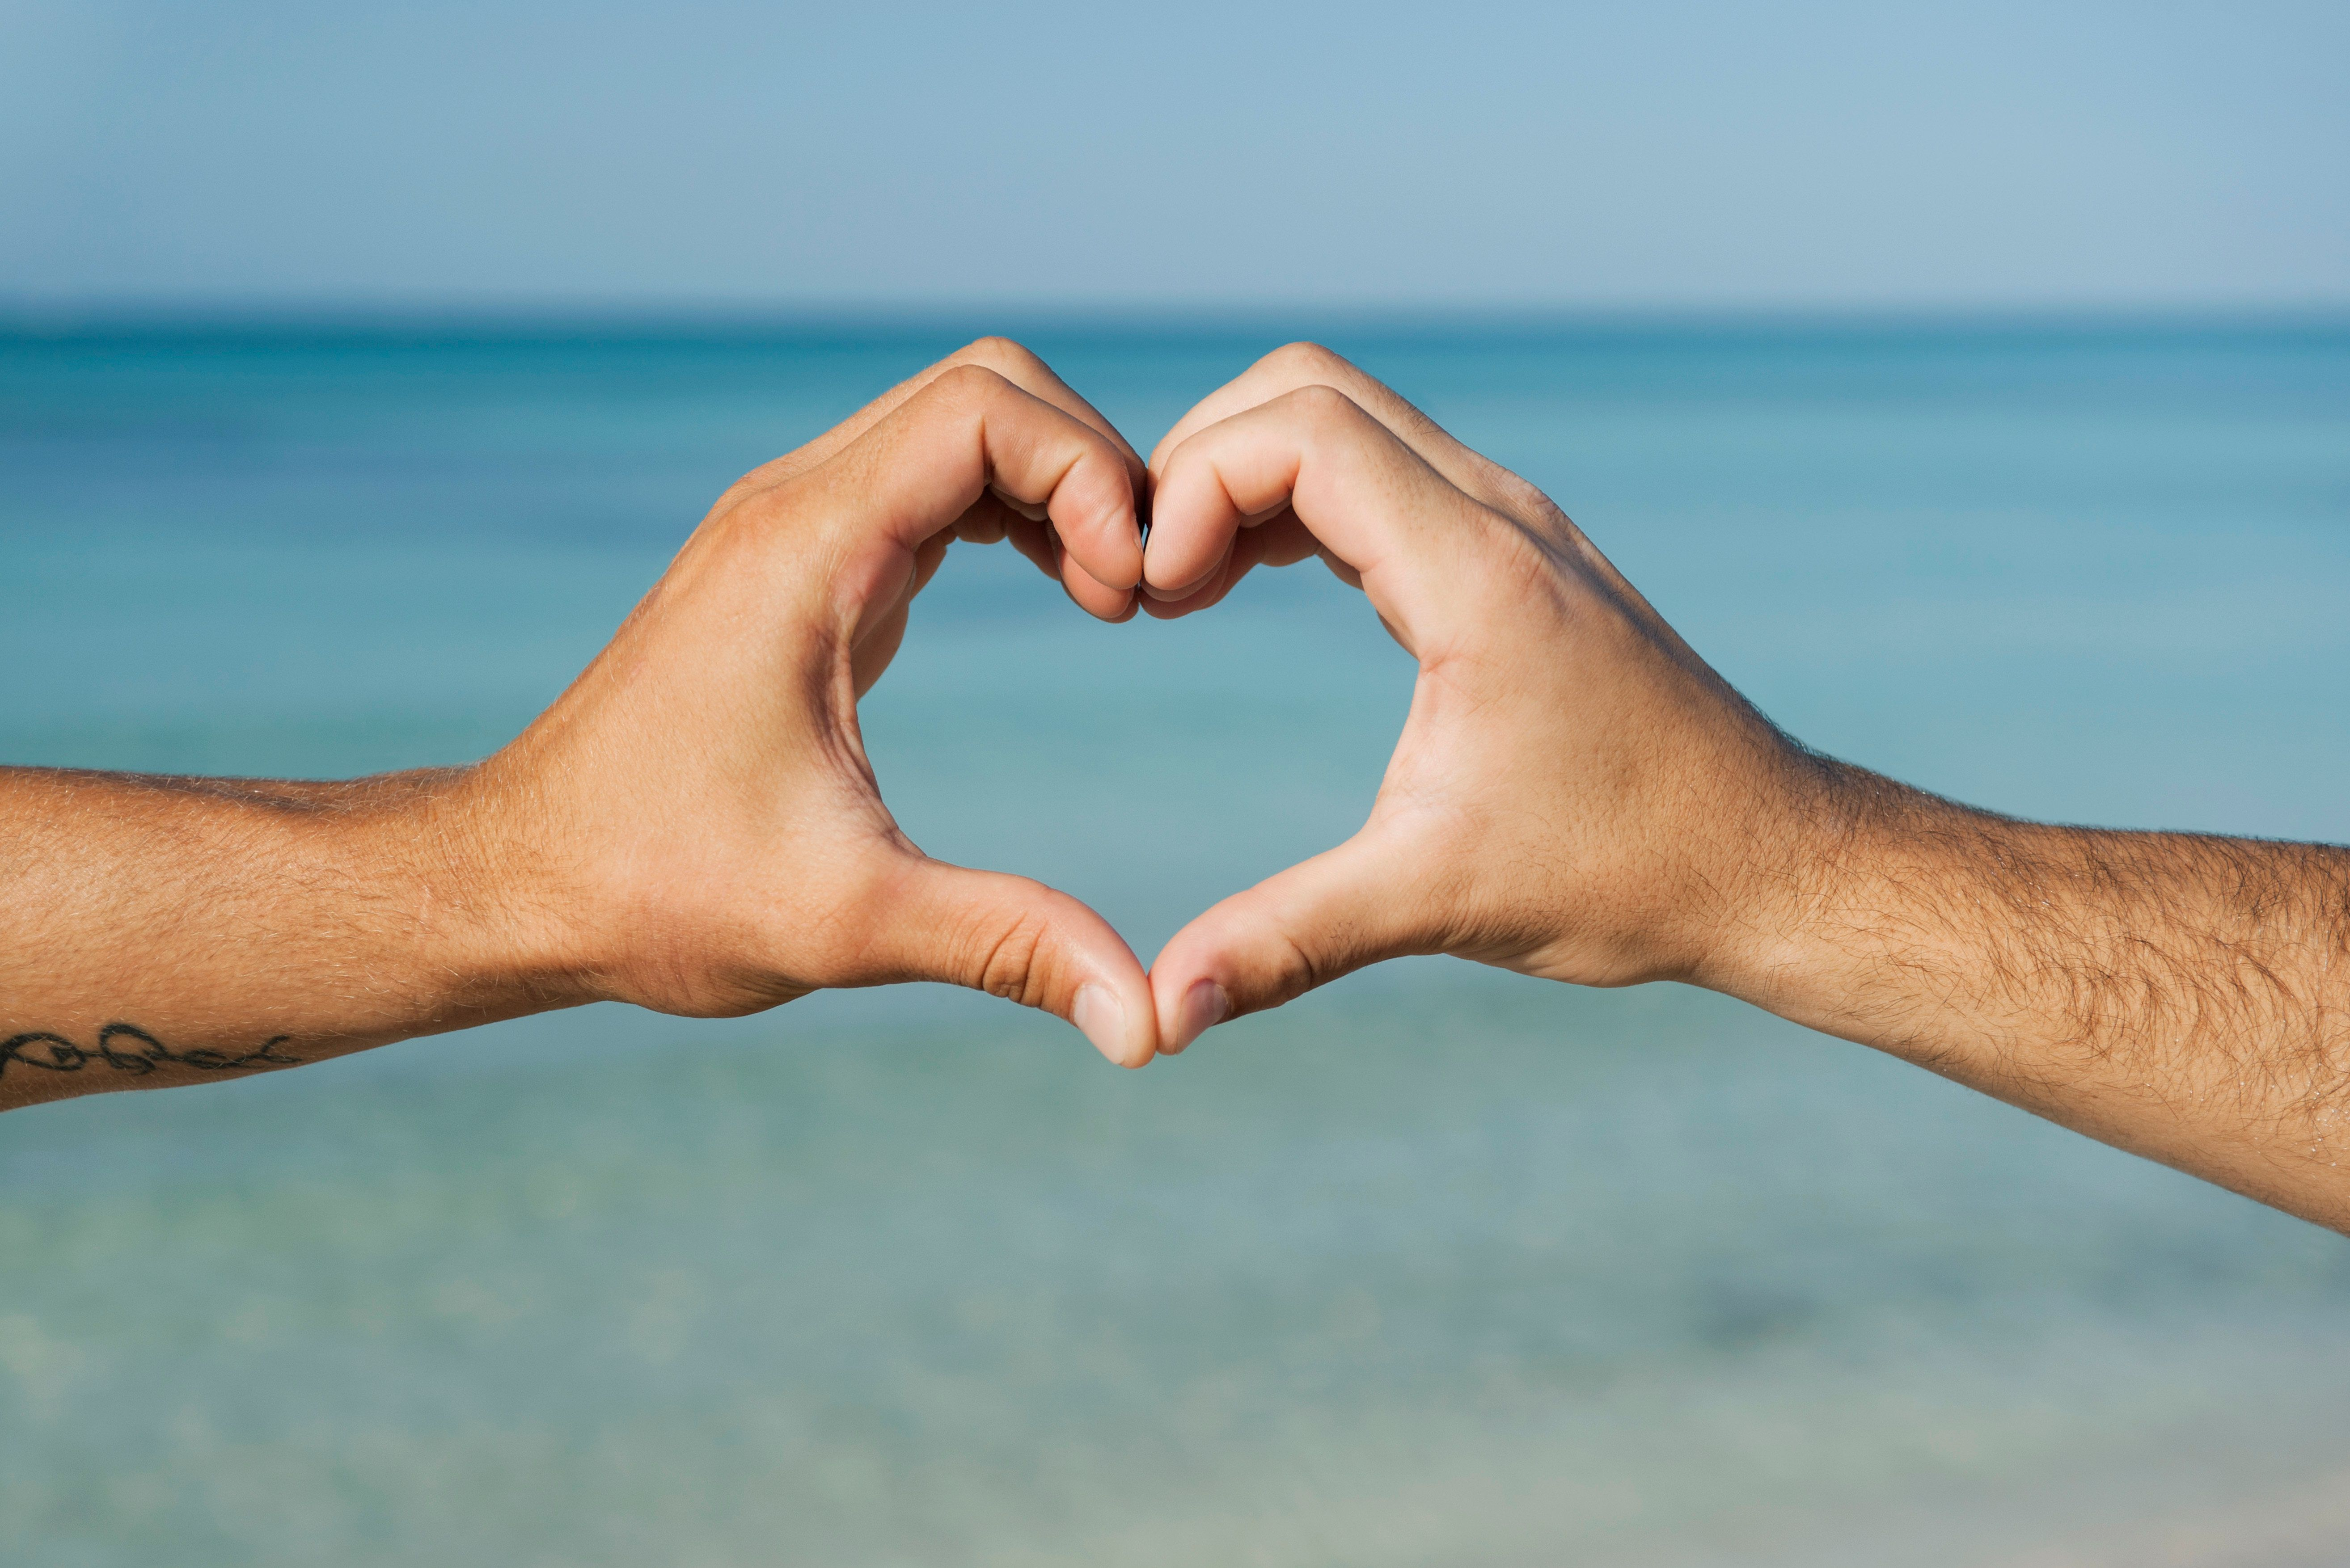 Two men's hands forming heart shape by ocean, cropped